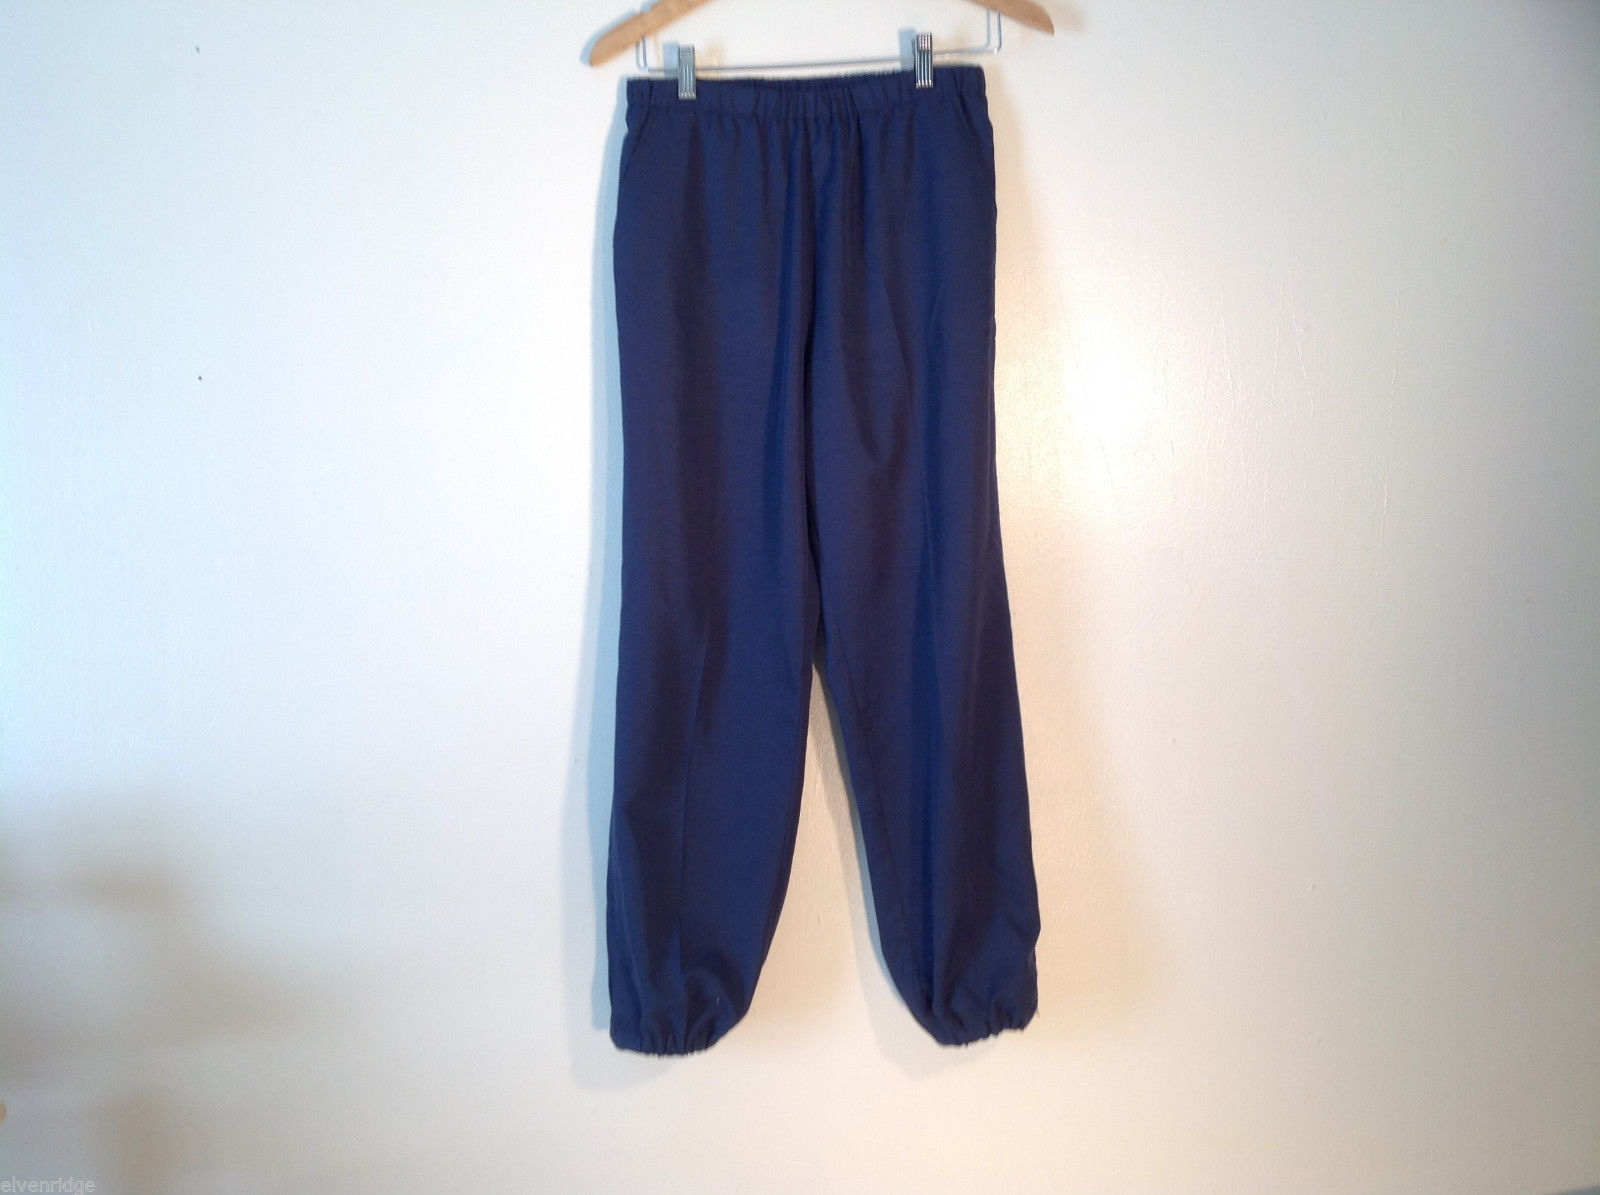 Mens Tail Size M Navy Blue Track Pants Elastic Waist Excellent